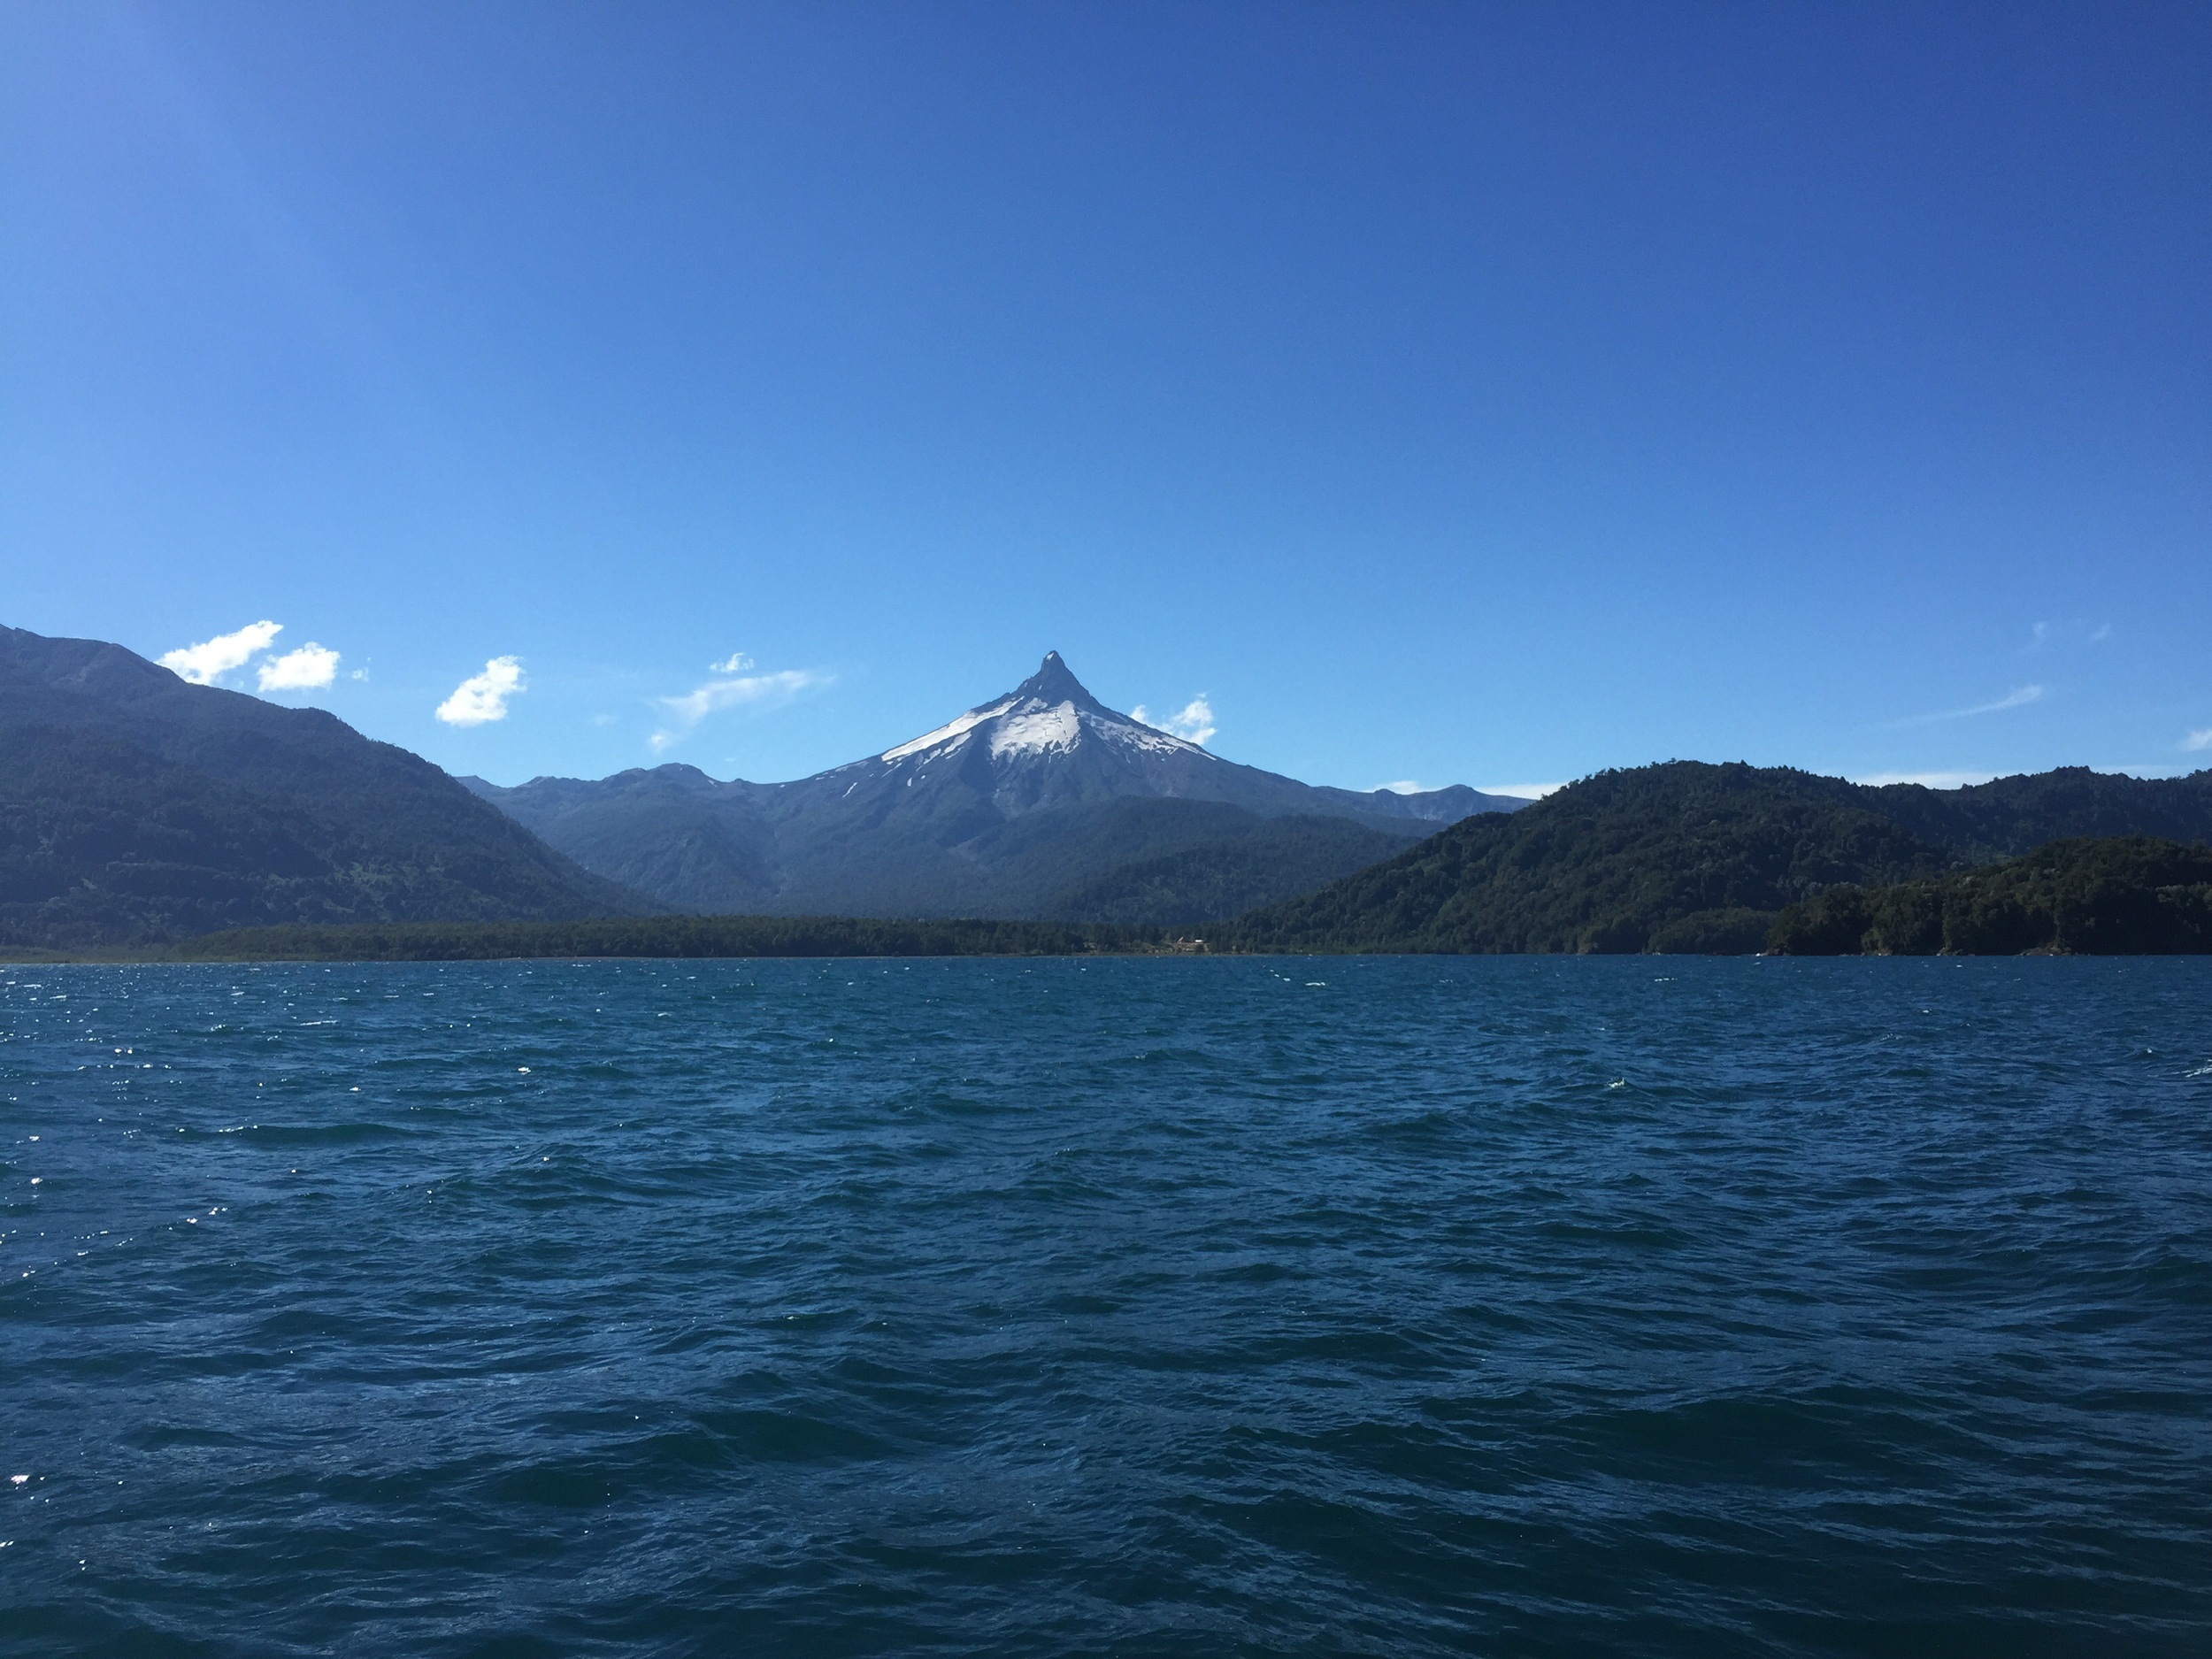 On board boat number three, and deep into Chile. This was the first volcano we saw, and it had eroded into this jagged peak like appearance.